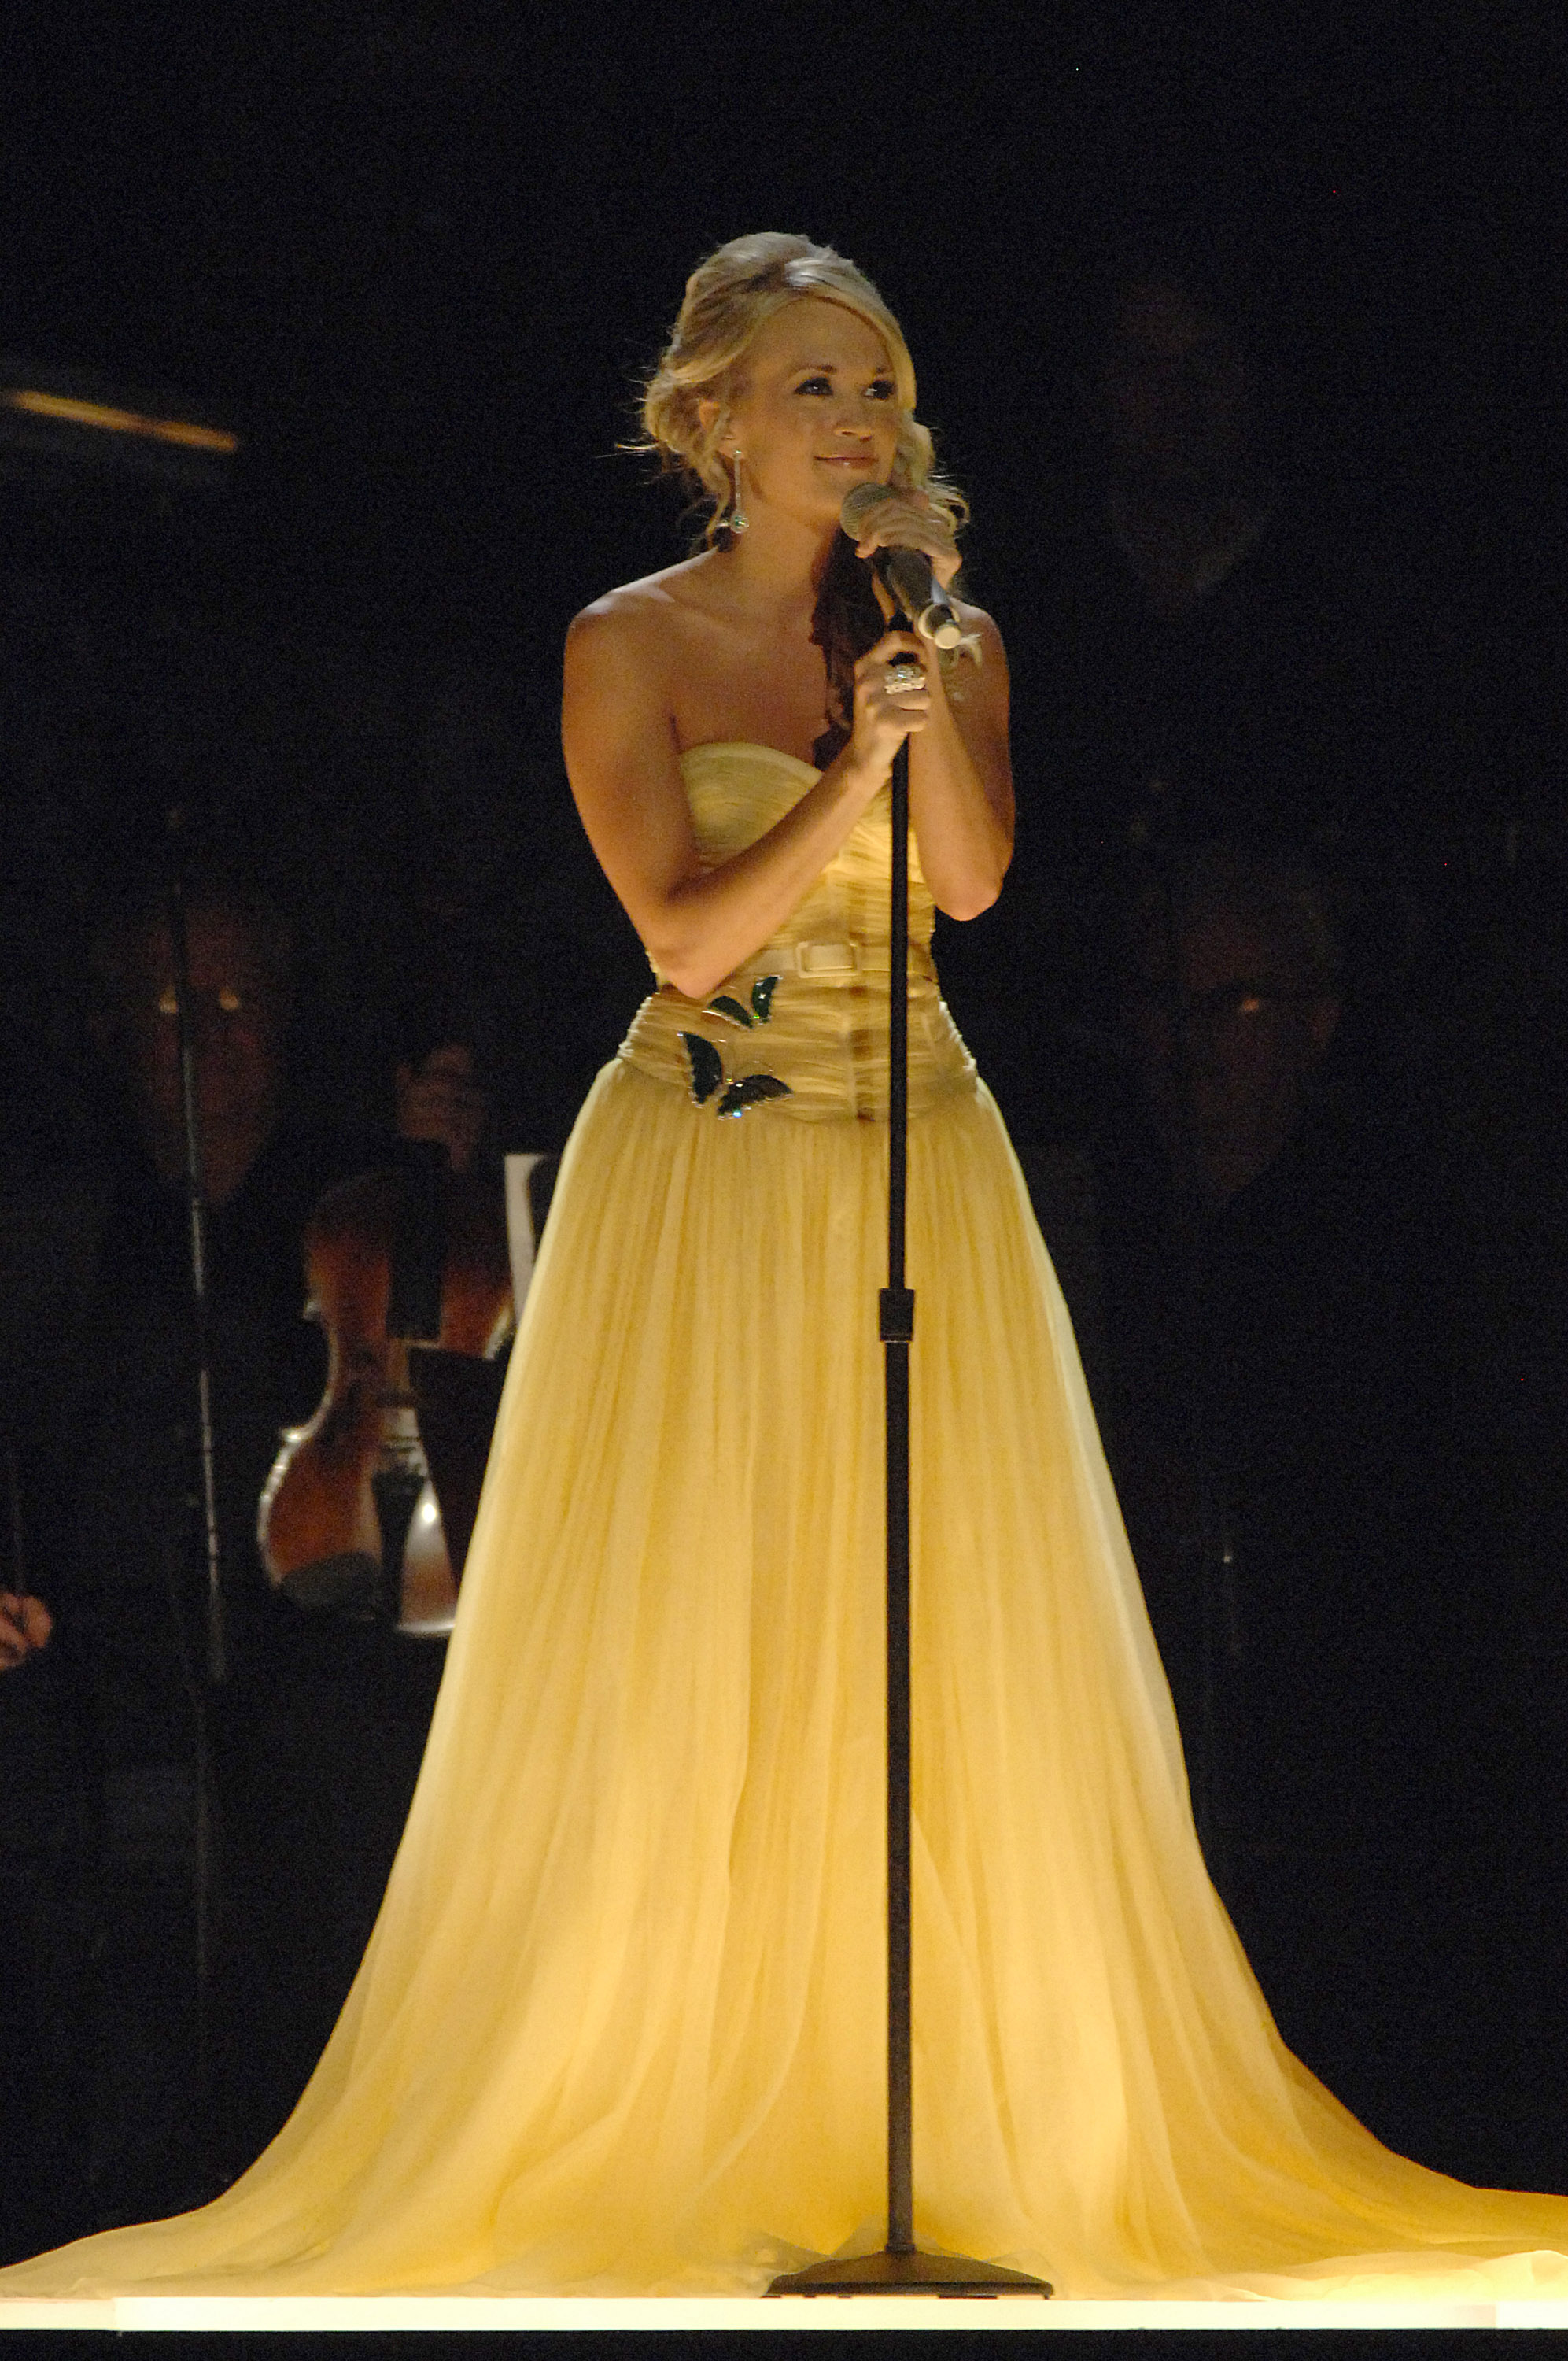 Carrie Underwood on stage at the 41st Annual CMA Awards at the Sommet Center on November 7, 2007 in Nashville TN; Photo by Rick Diamond/WireImage